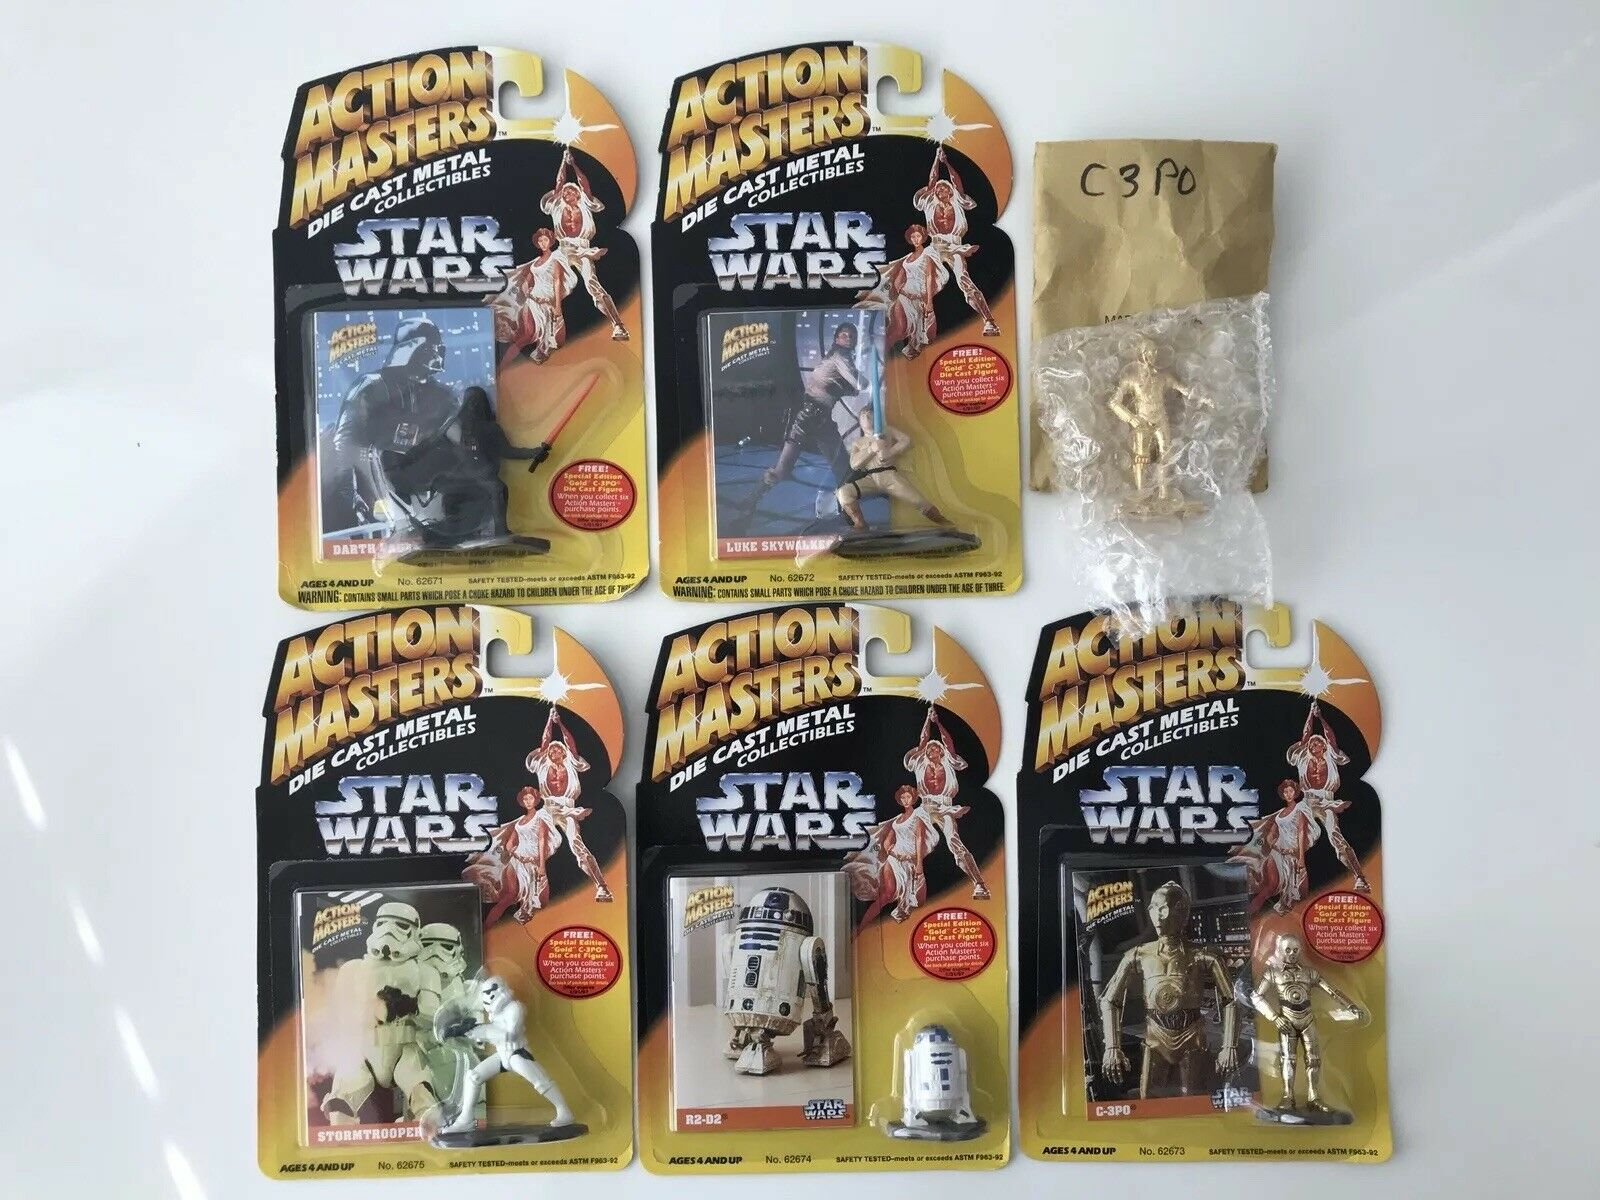 Kenner Action Masters Star Wars Die Cast (Lot of 6) Brand New RARE PROMO